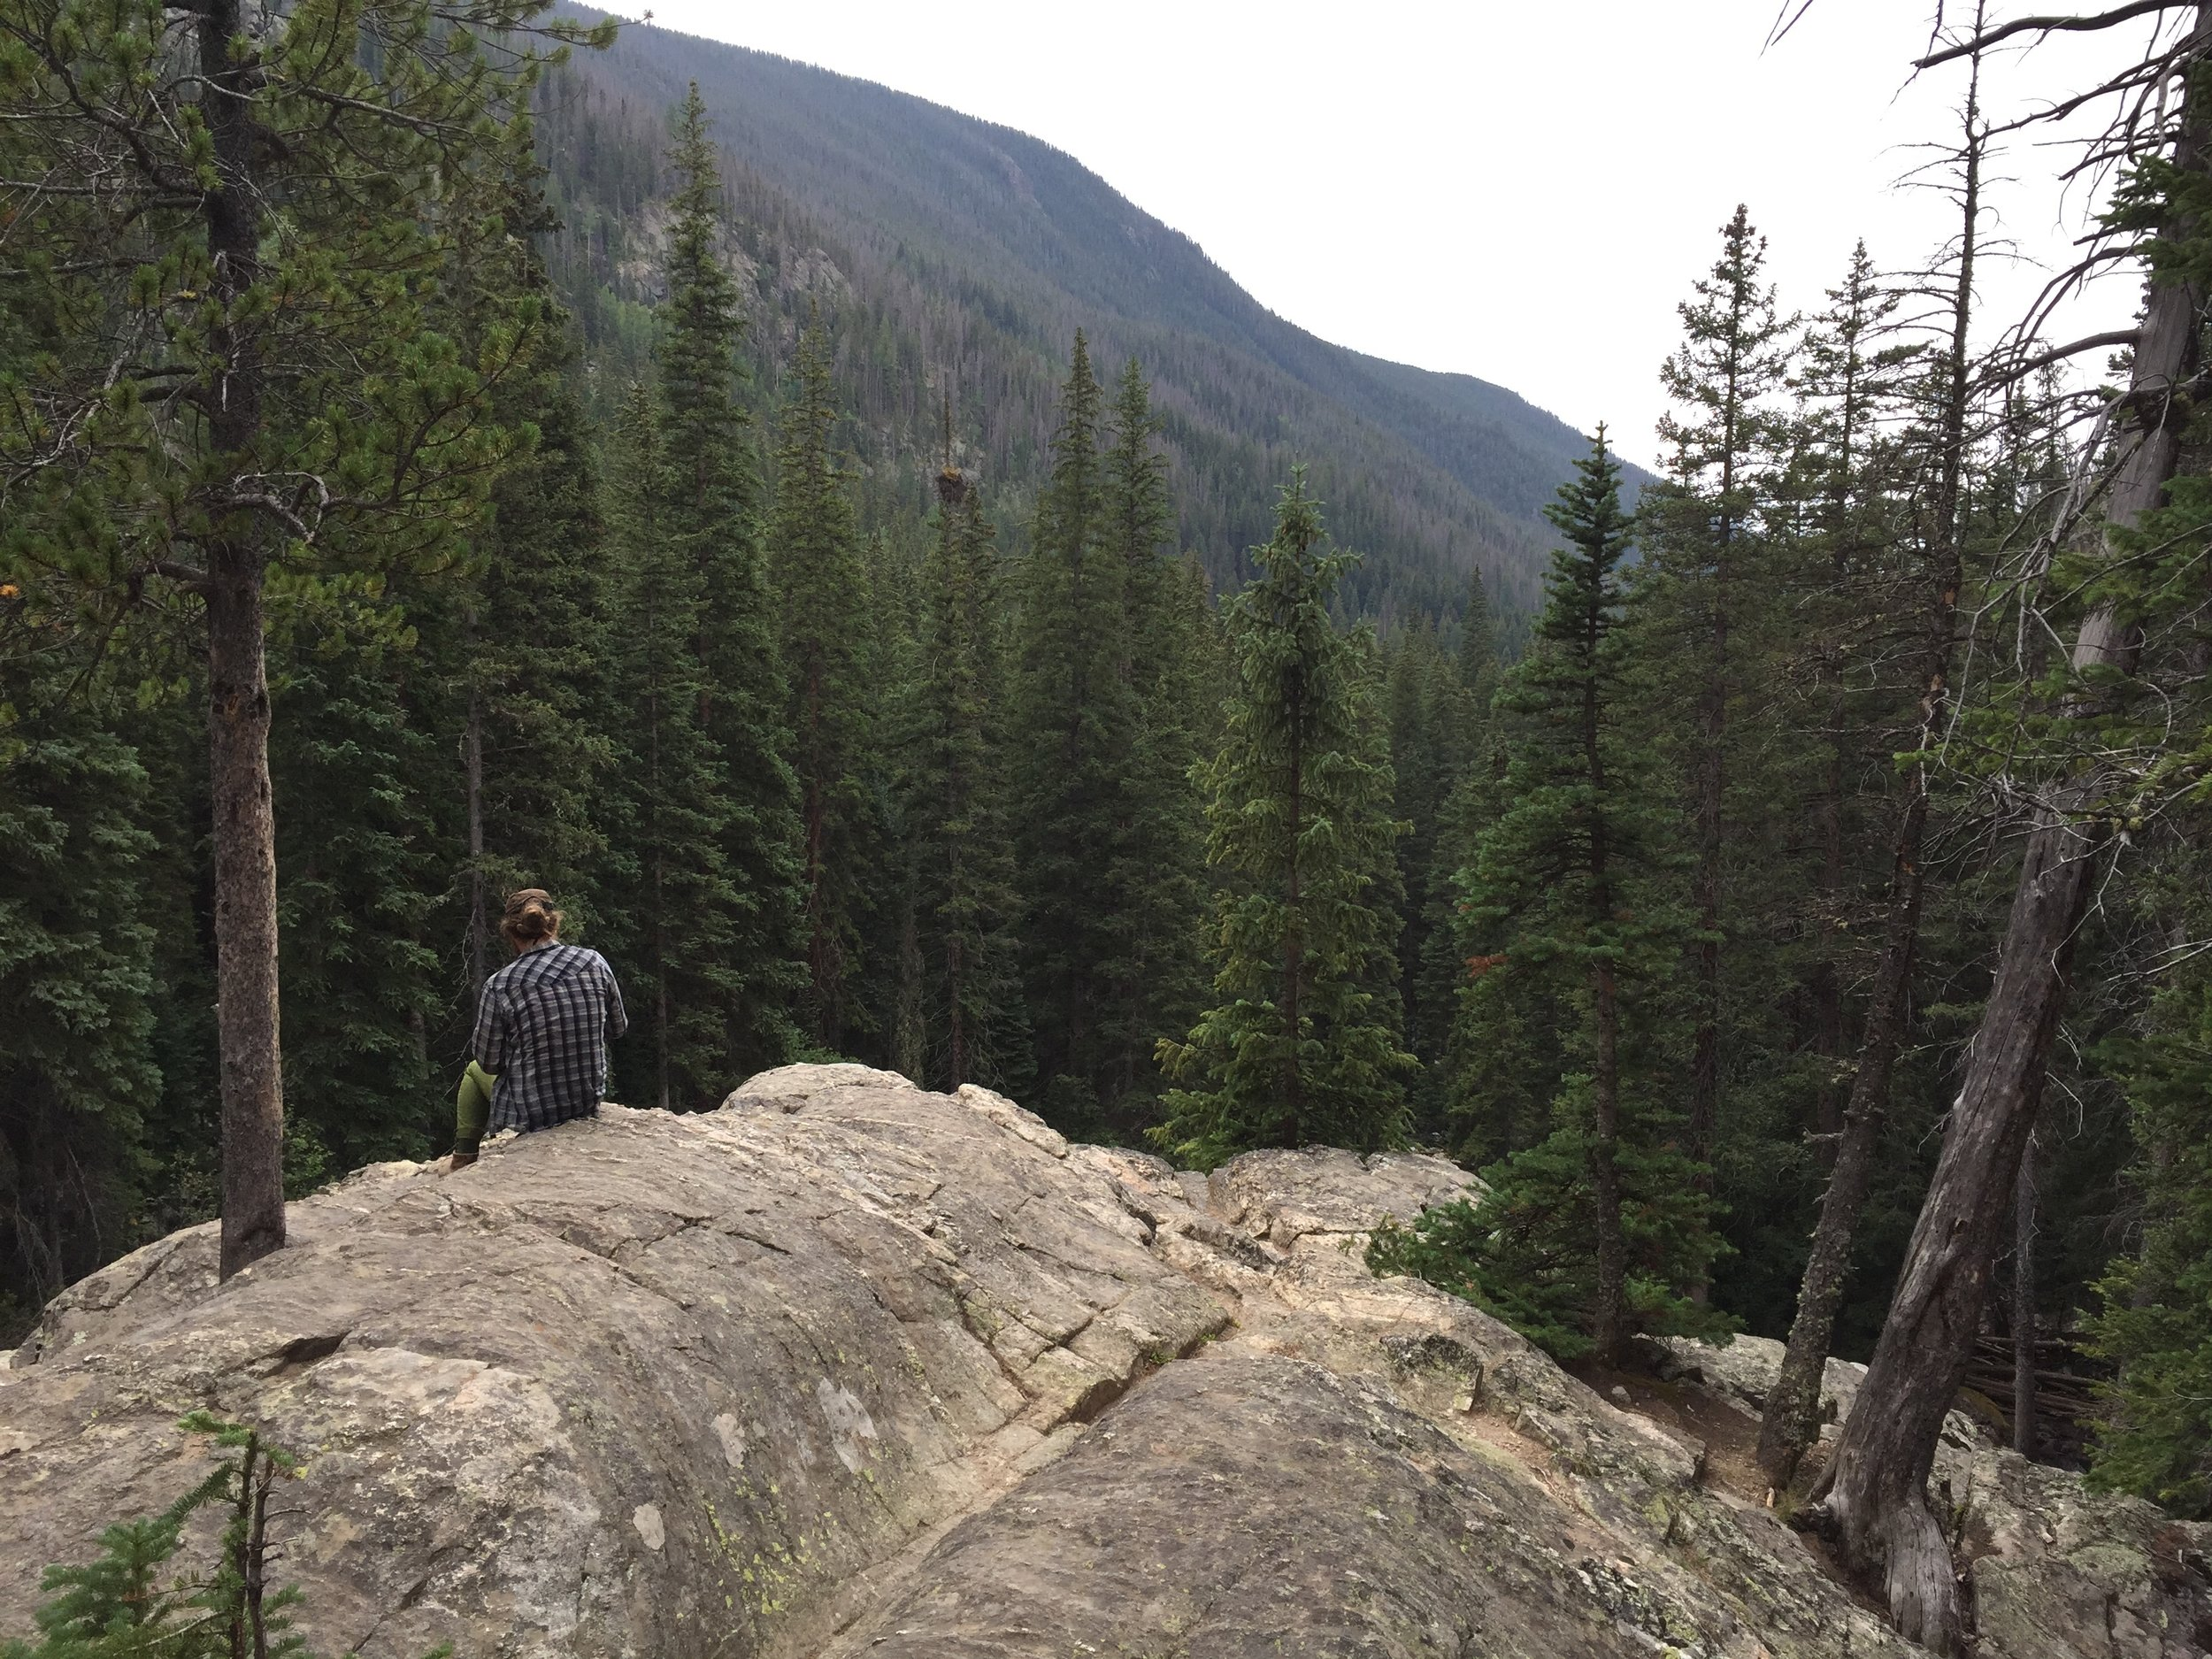 Hiking in Eses Park, Colorado in July